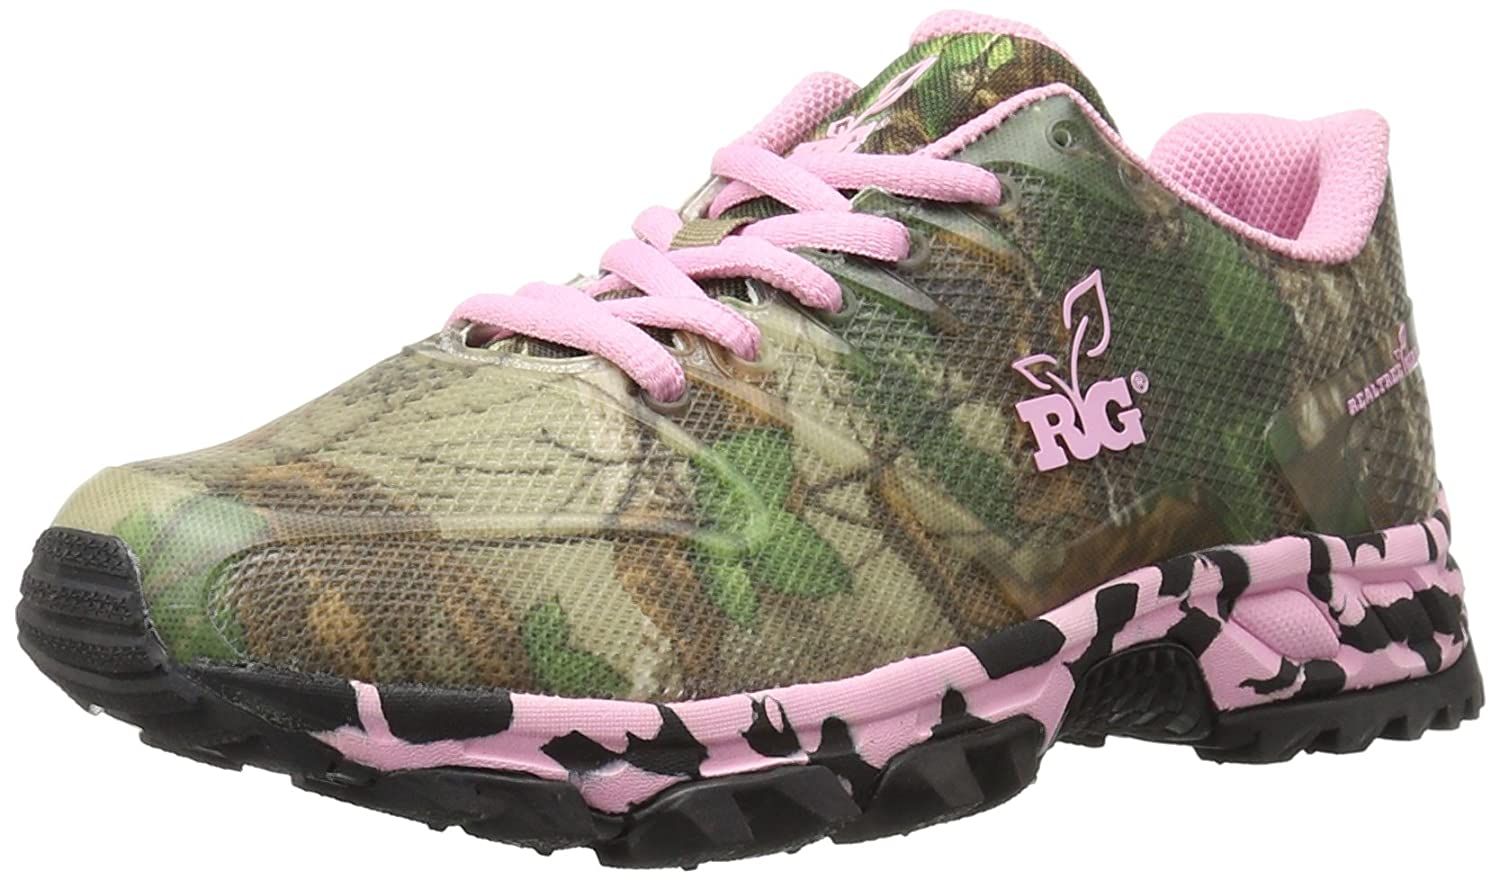 Realtree Women's Mamba Hiking Shoe